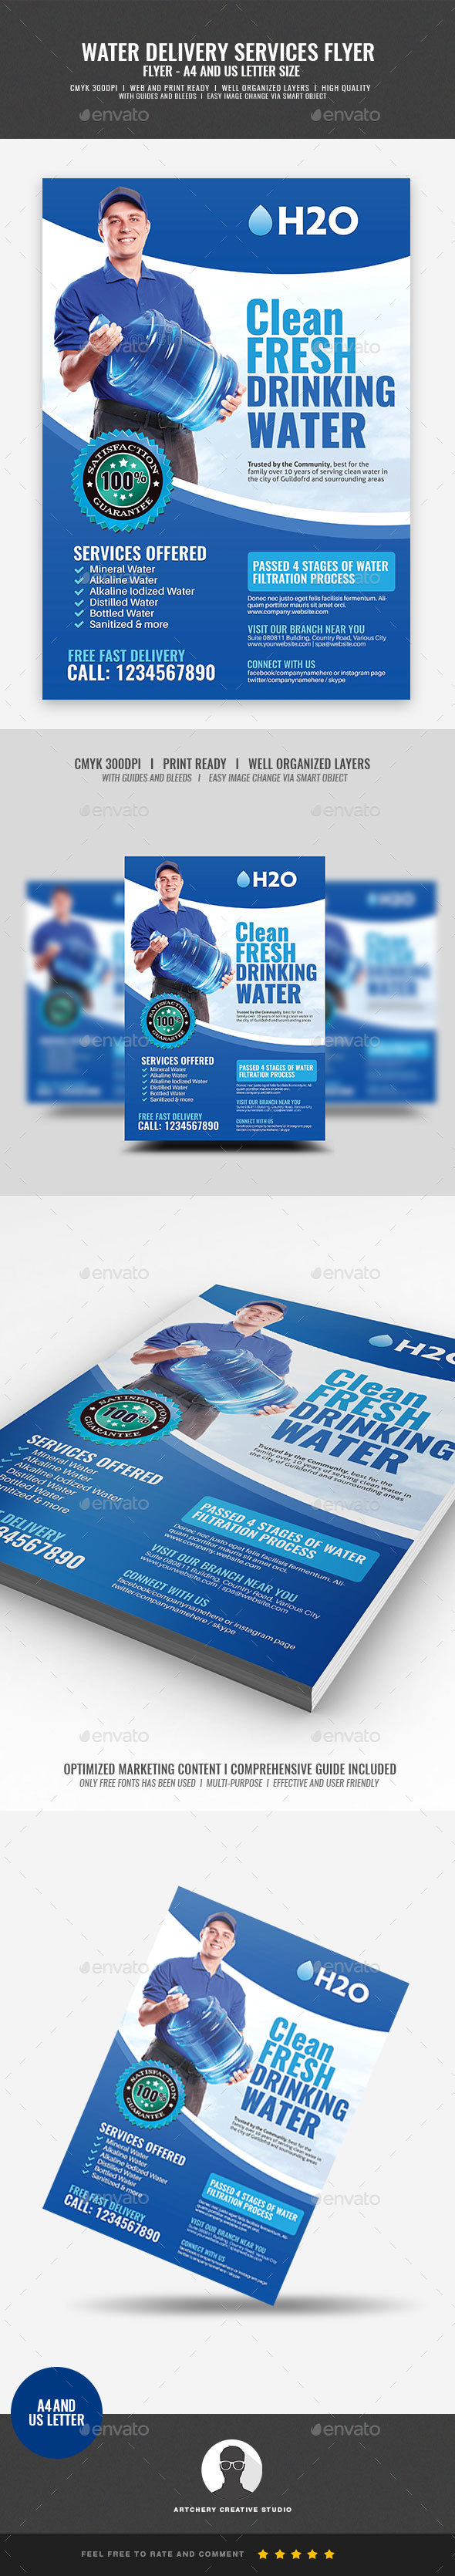 GraphicRiver Watery Delivery Services Flyer 21098663